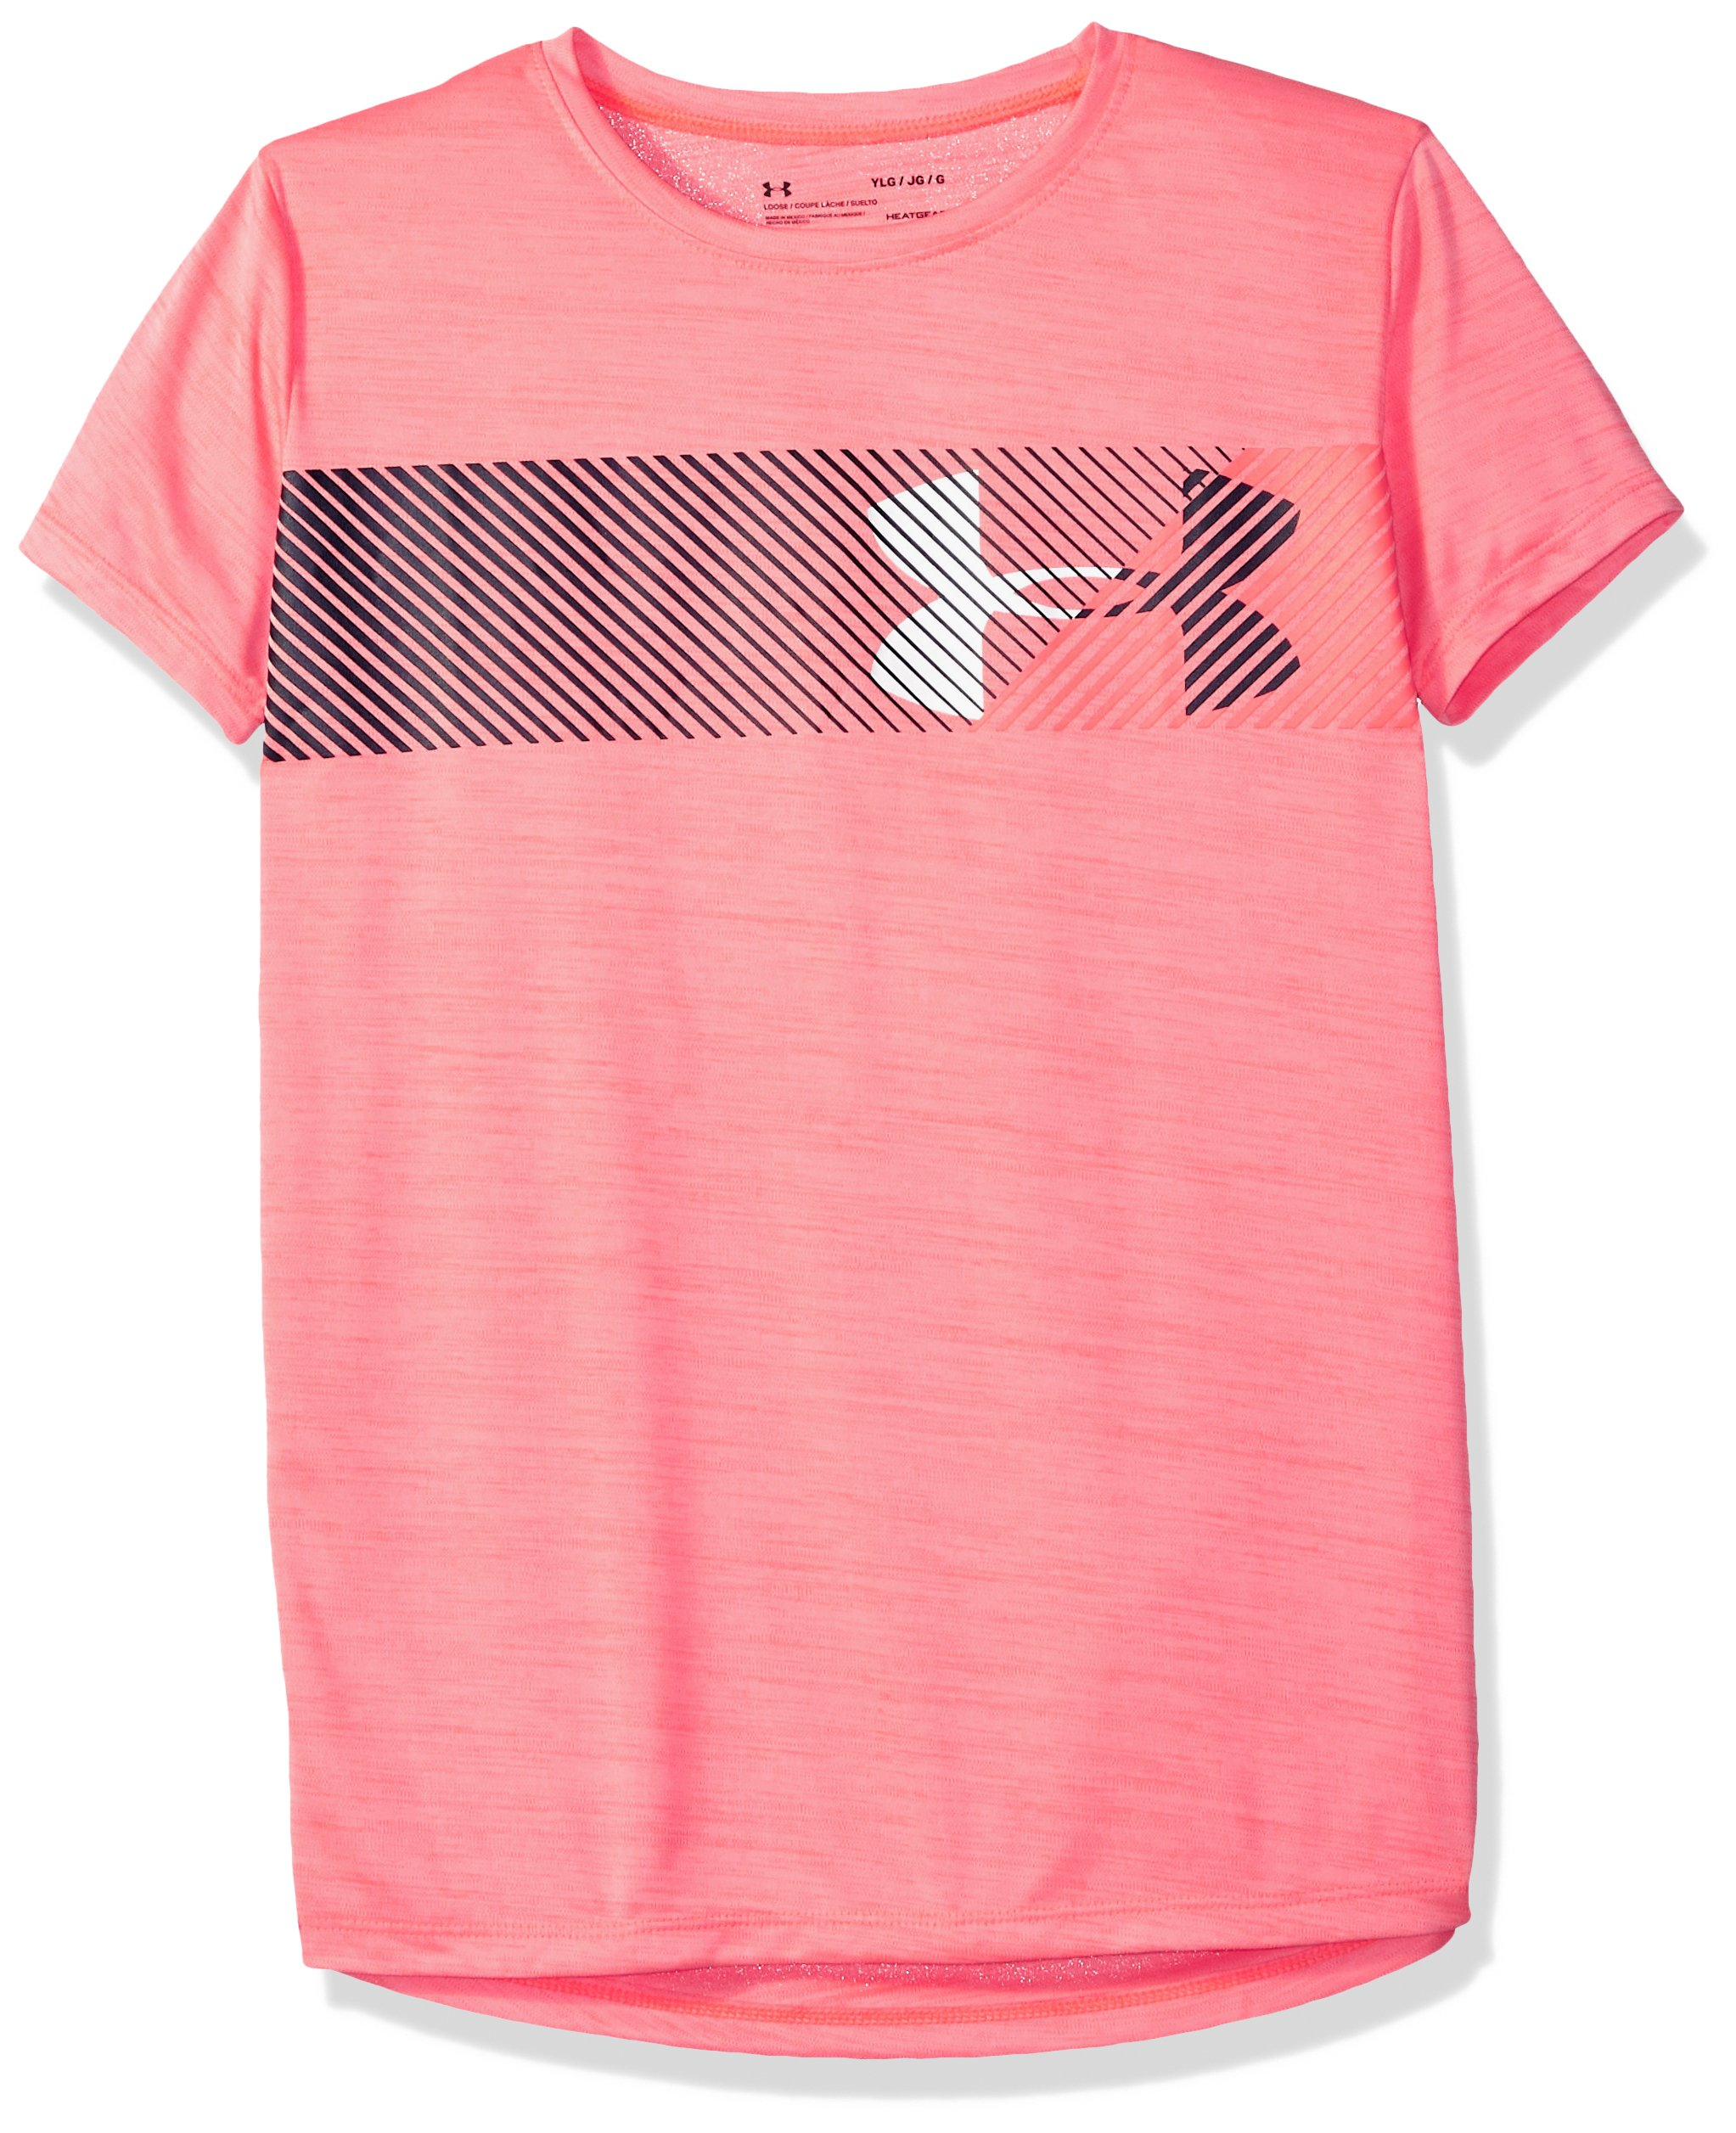 Under Armour Girls' Hybrid Big Logo T-Shirt, Brilliance /Brilliance, Youth Medium